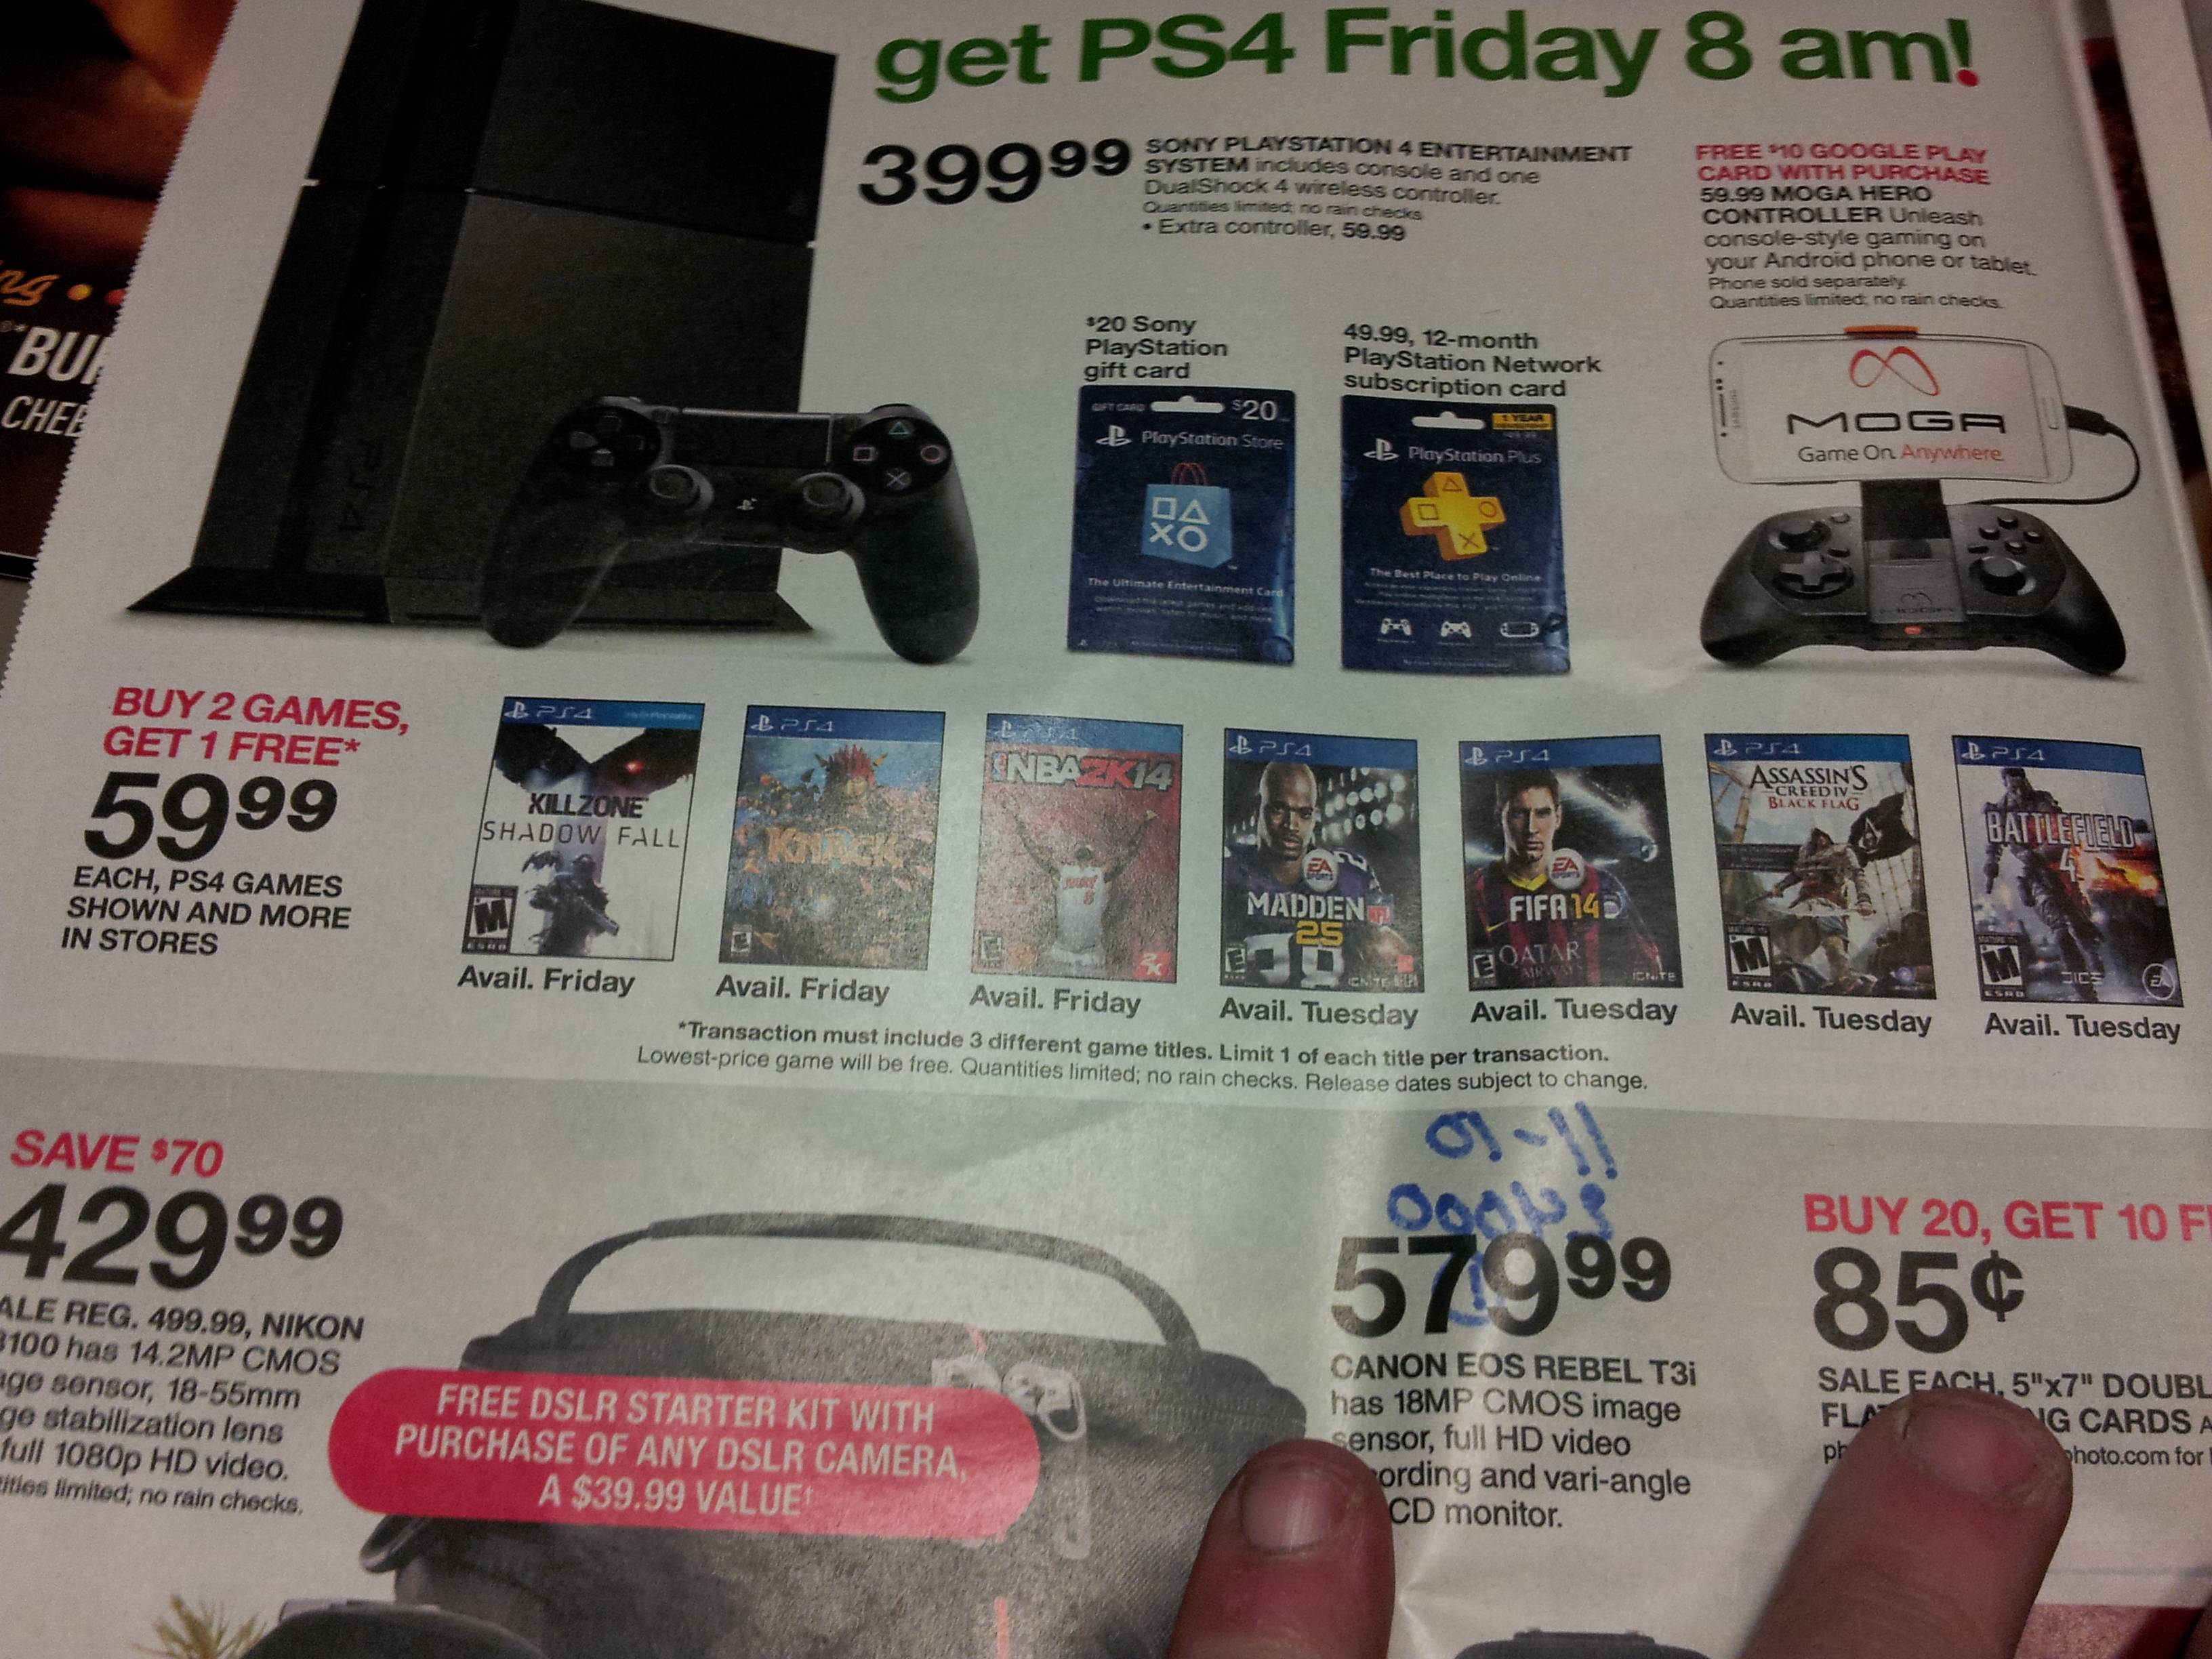 ps4 launch games to be buy 2 get 1 free at target on november